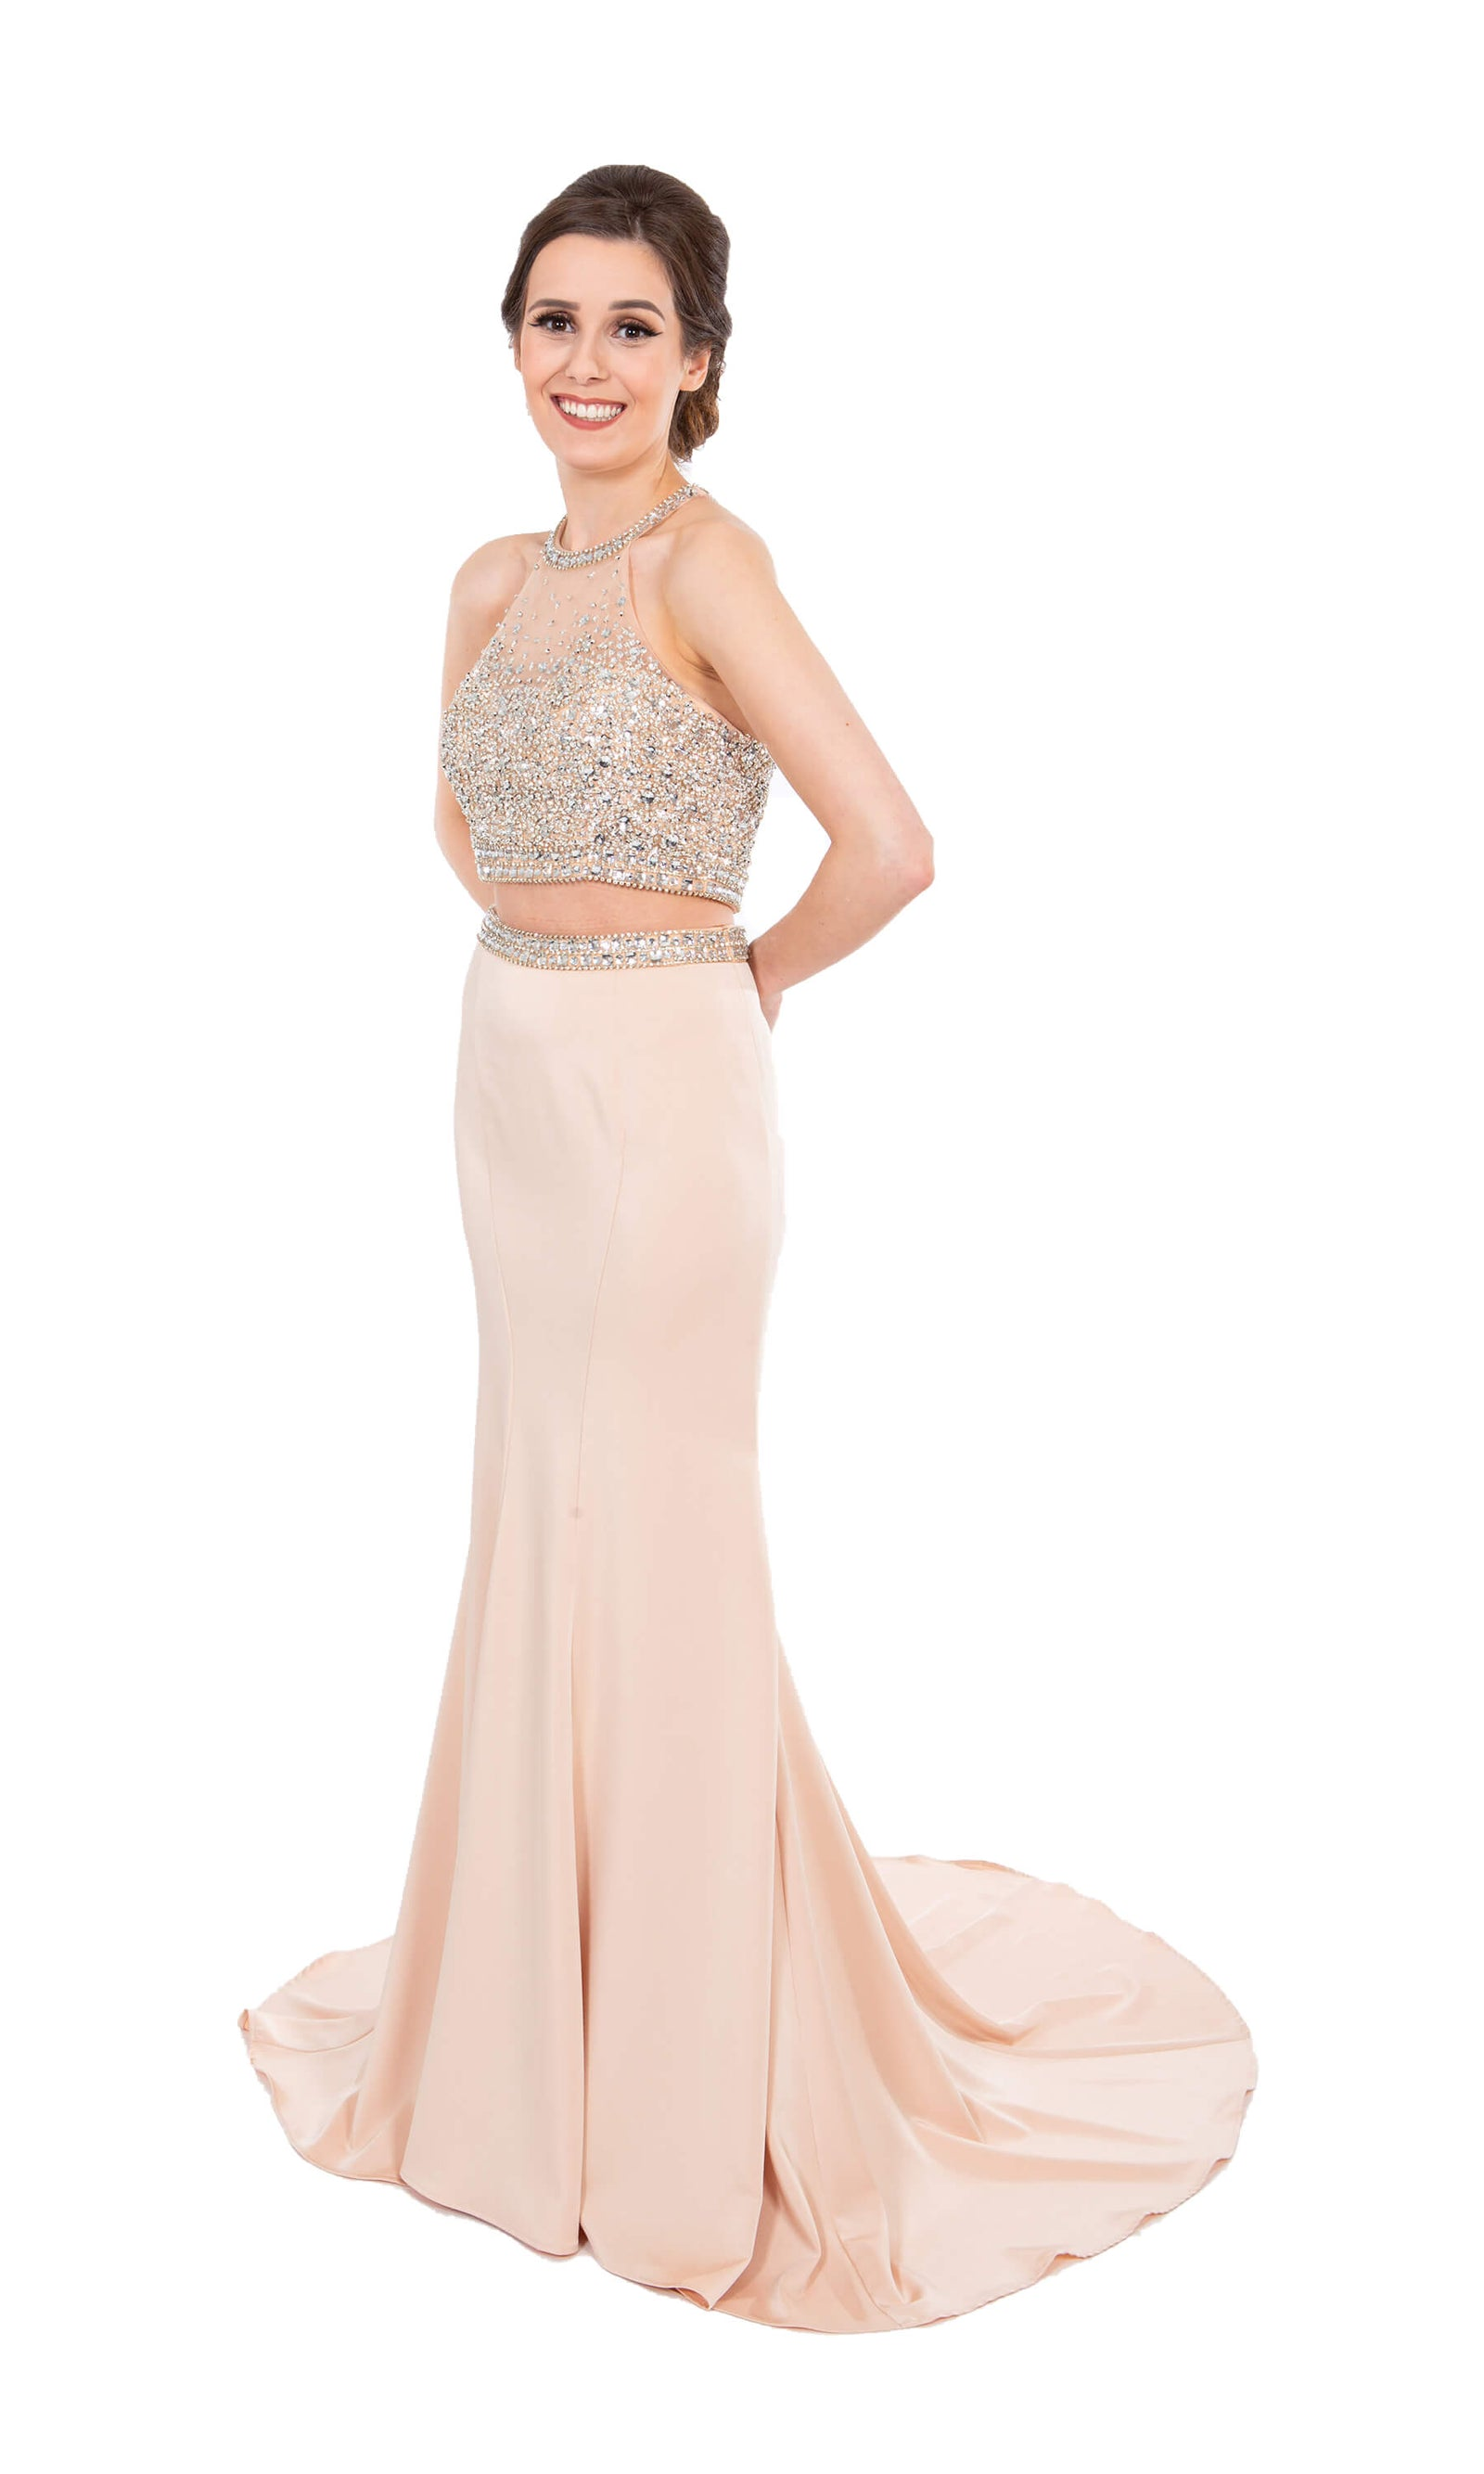 PF9636 Nude Prom Frocks Two Piece Dress With Train - Fab Frocks